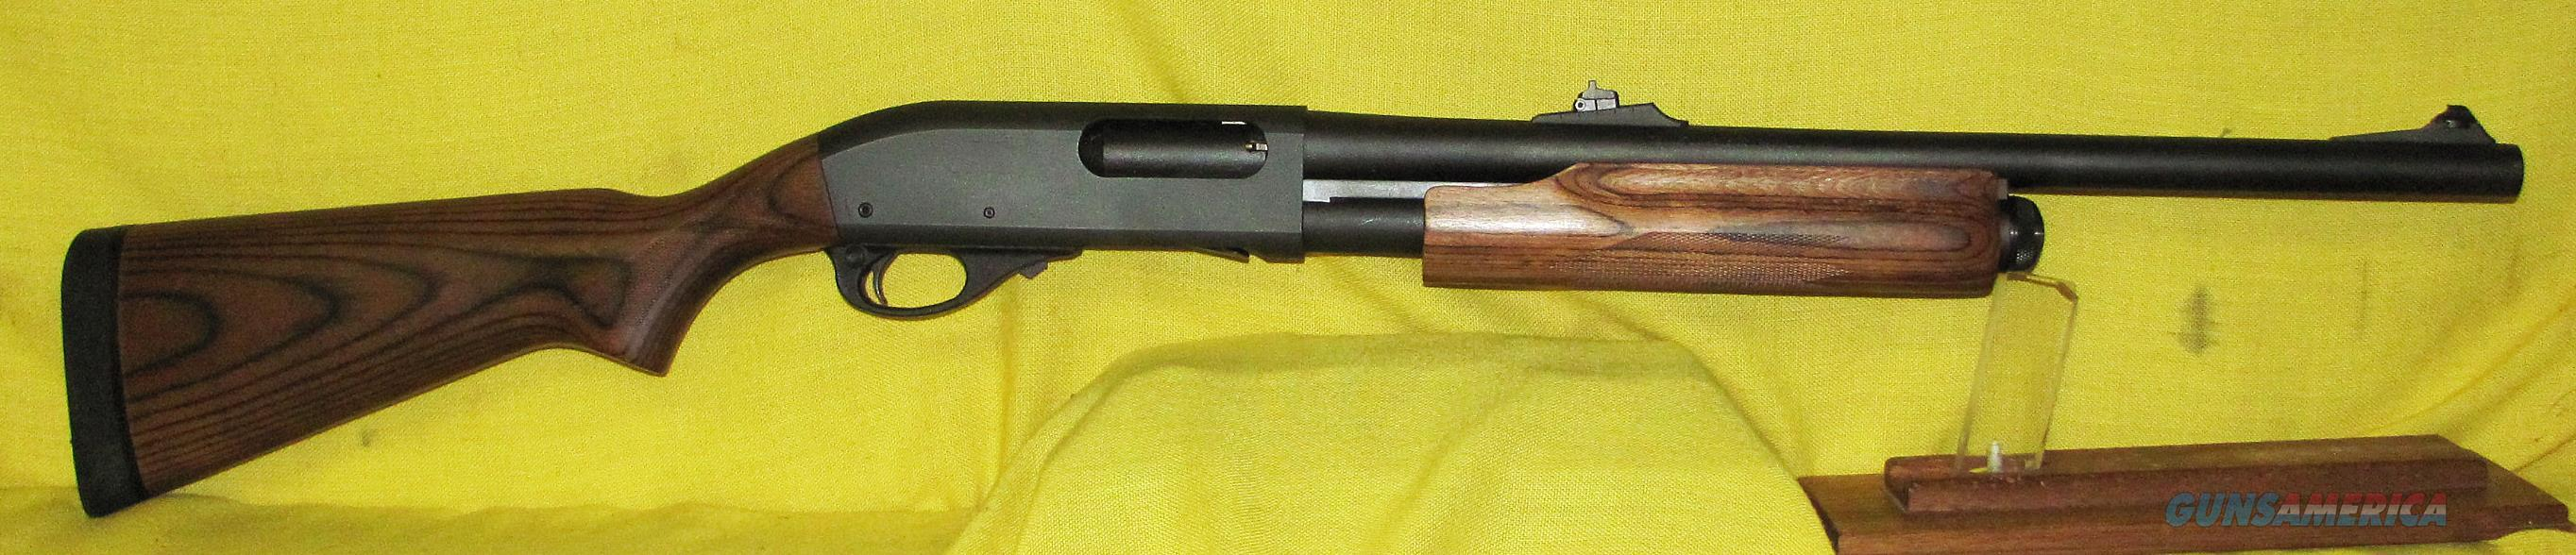 REMINGTON 870  Guns > Shotguns > Remington Shotguns  > Pump > Hunting